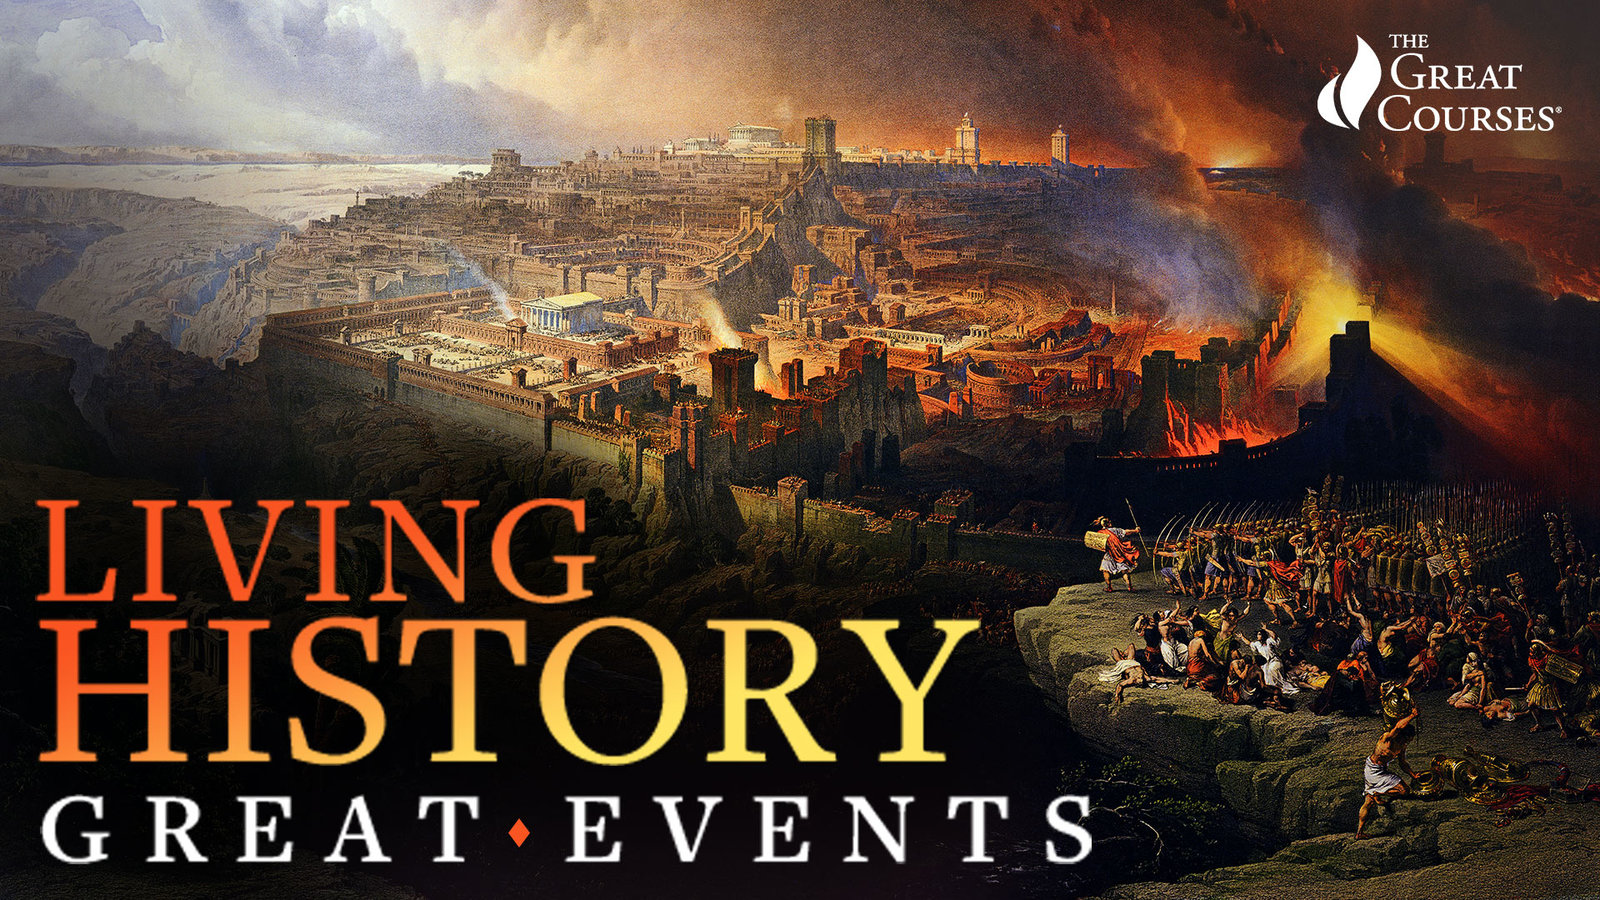 Living History - Experiencing Great Events of the Ancient and Medieval Worlds